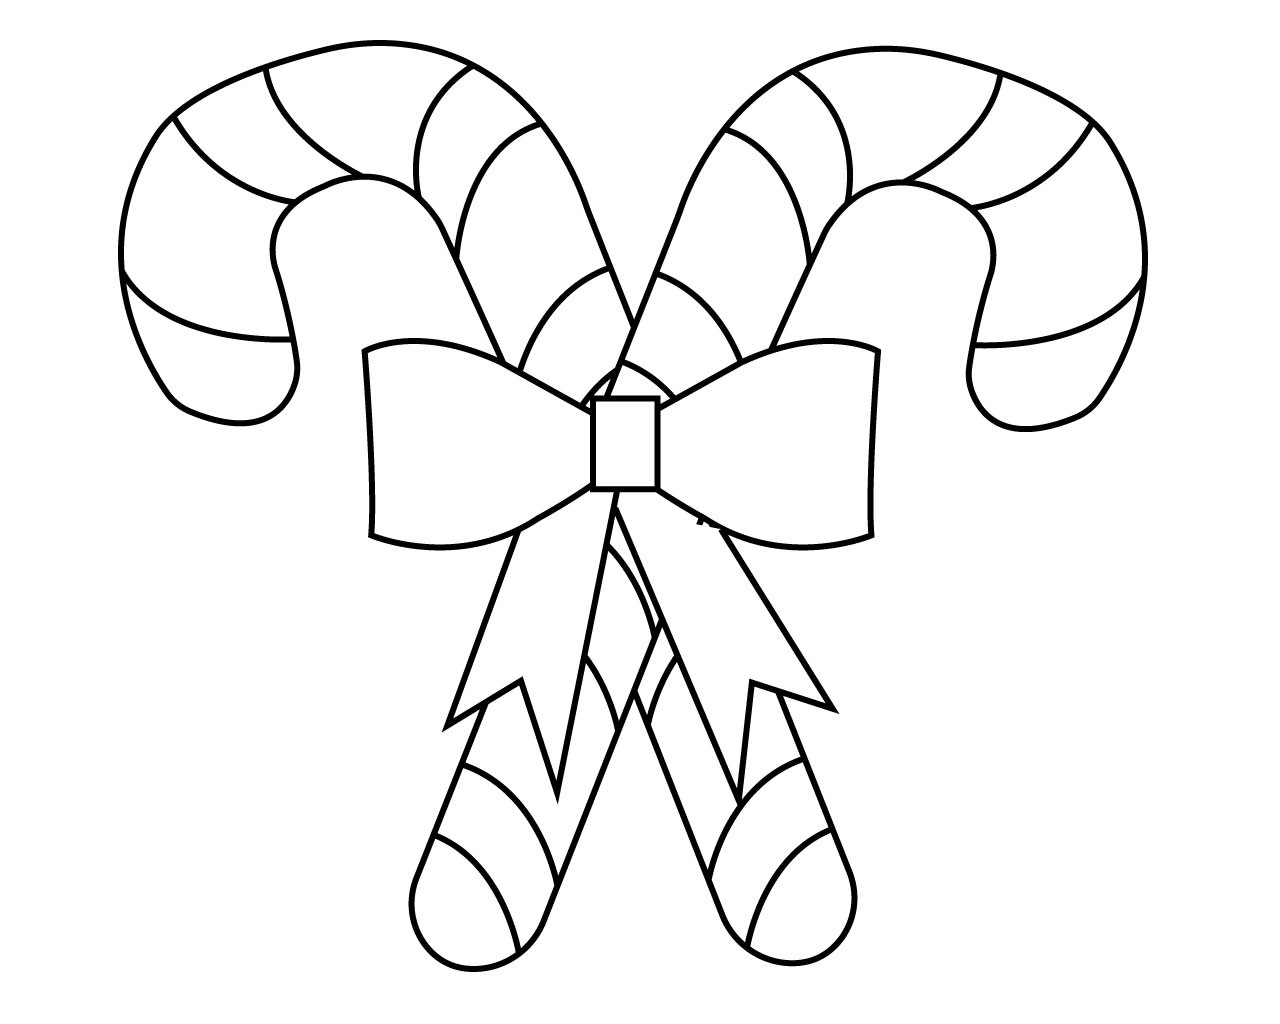 Best ideas about Candy Cane Printable Coloring Pages . Save or Pin Candy Cane Coloring Pages For Kids printable Now.